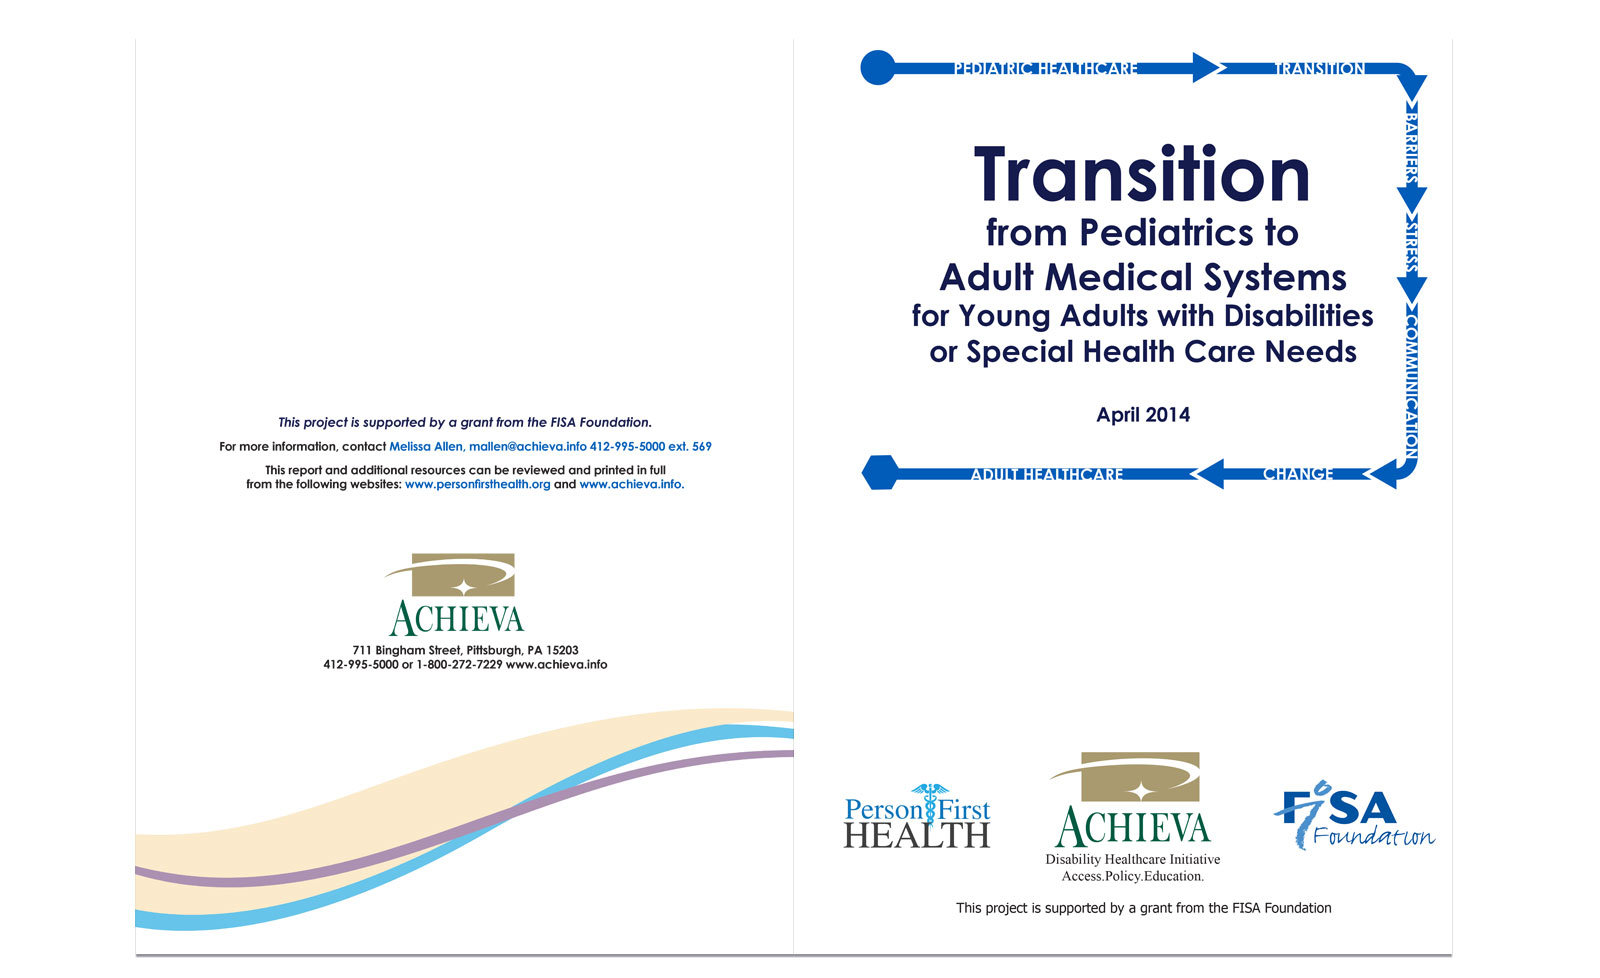 Transition from Pediatrics to Adult front and back covers